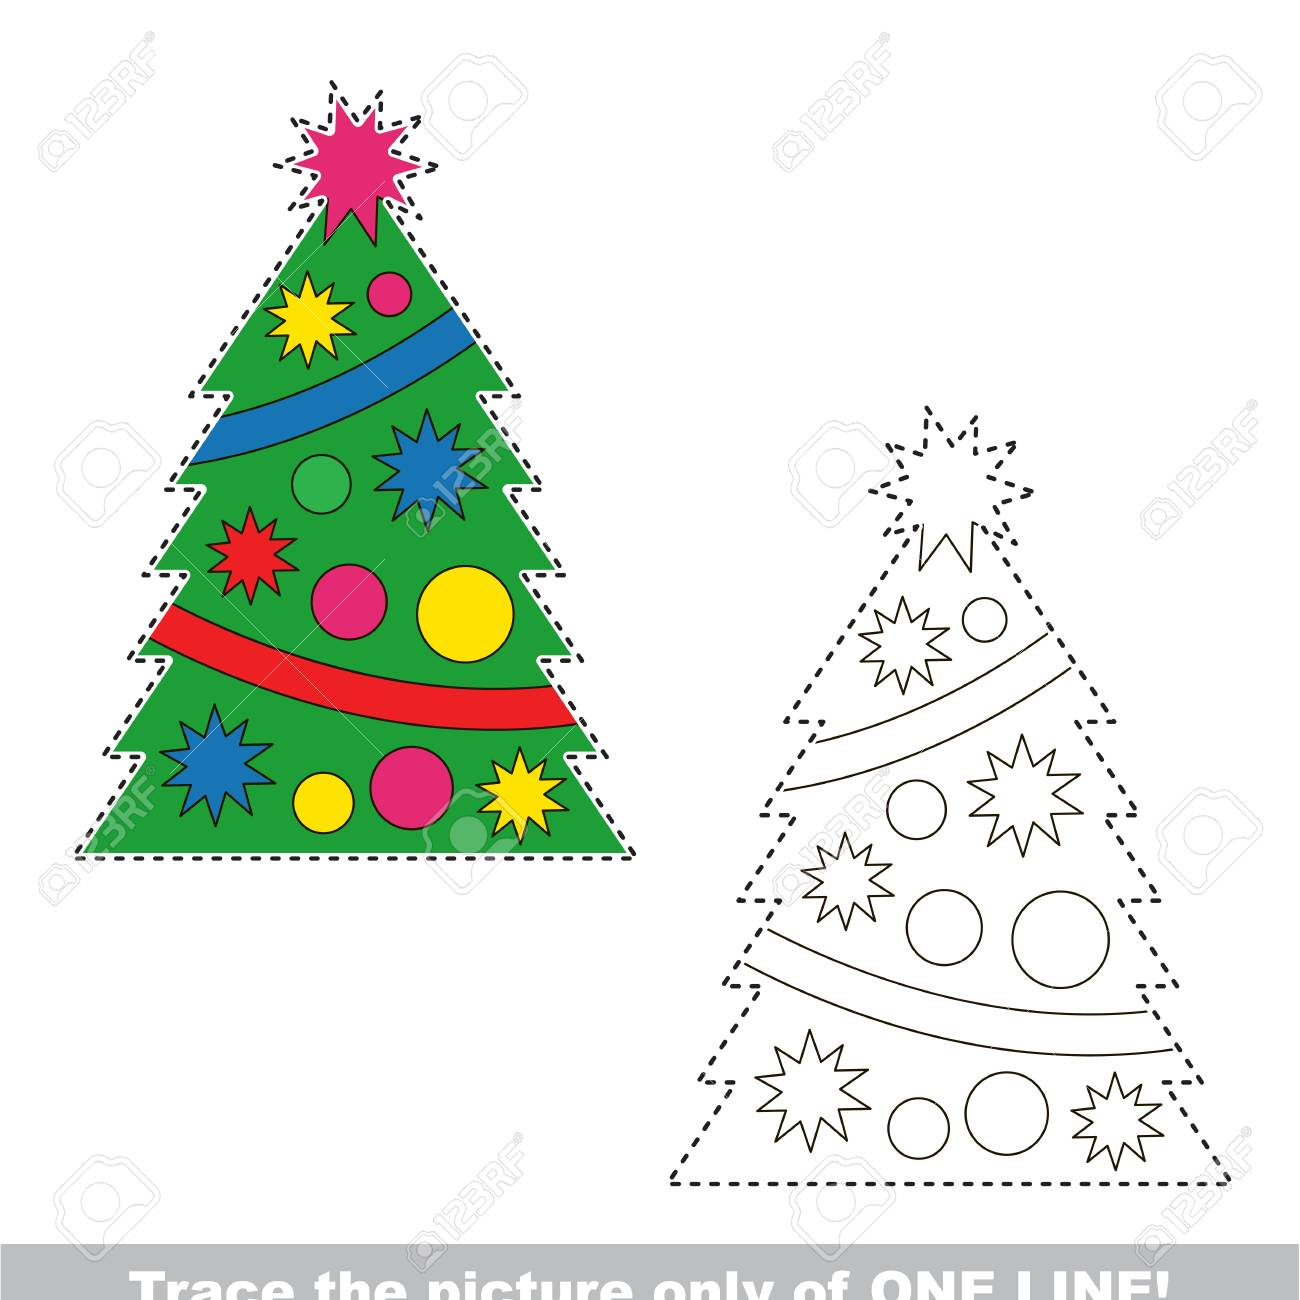 New Year Christmas Tree To Be Traced Only Of One Line, The Tracing ...